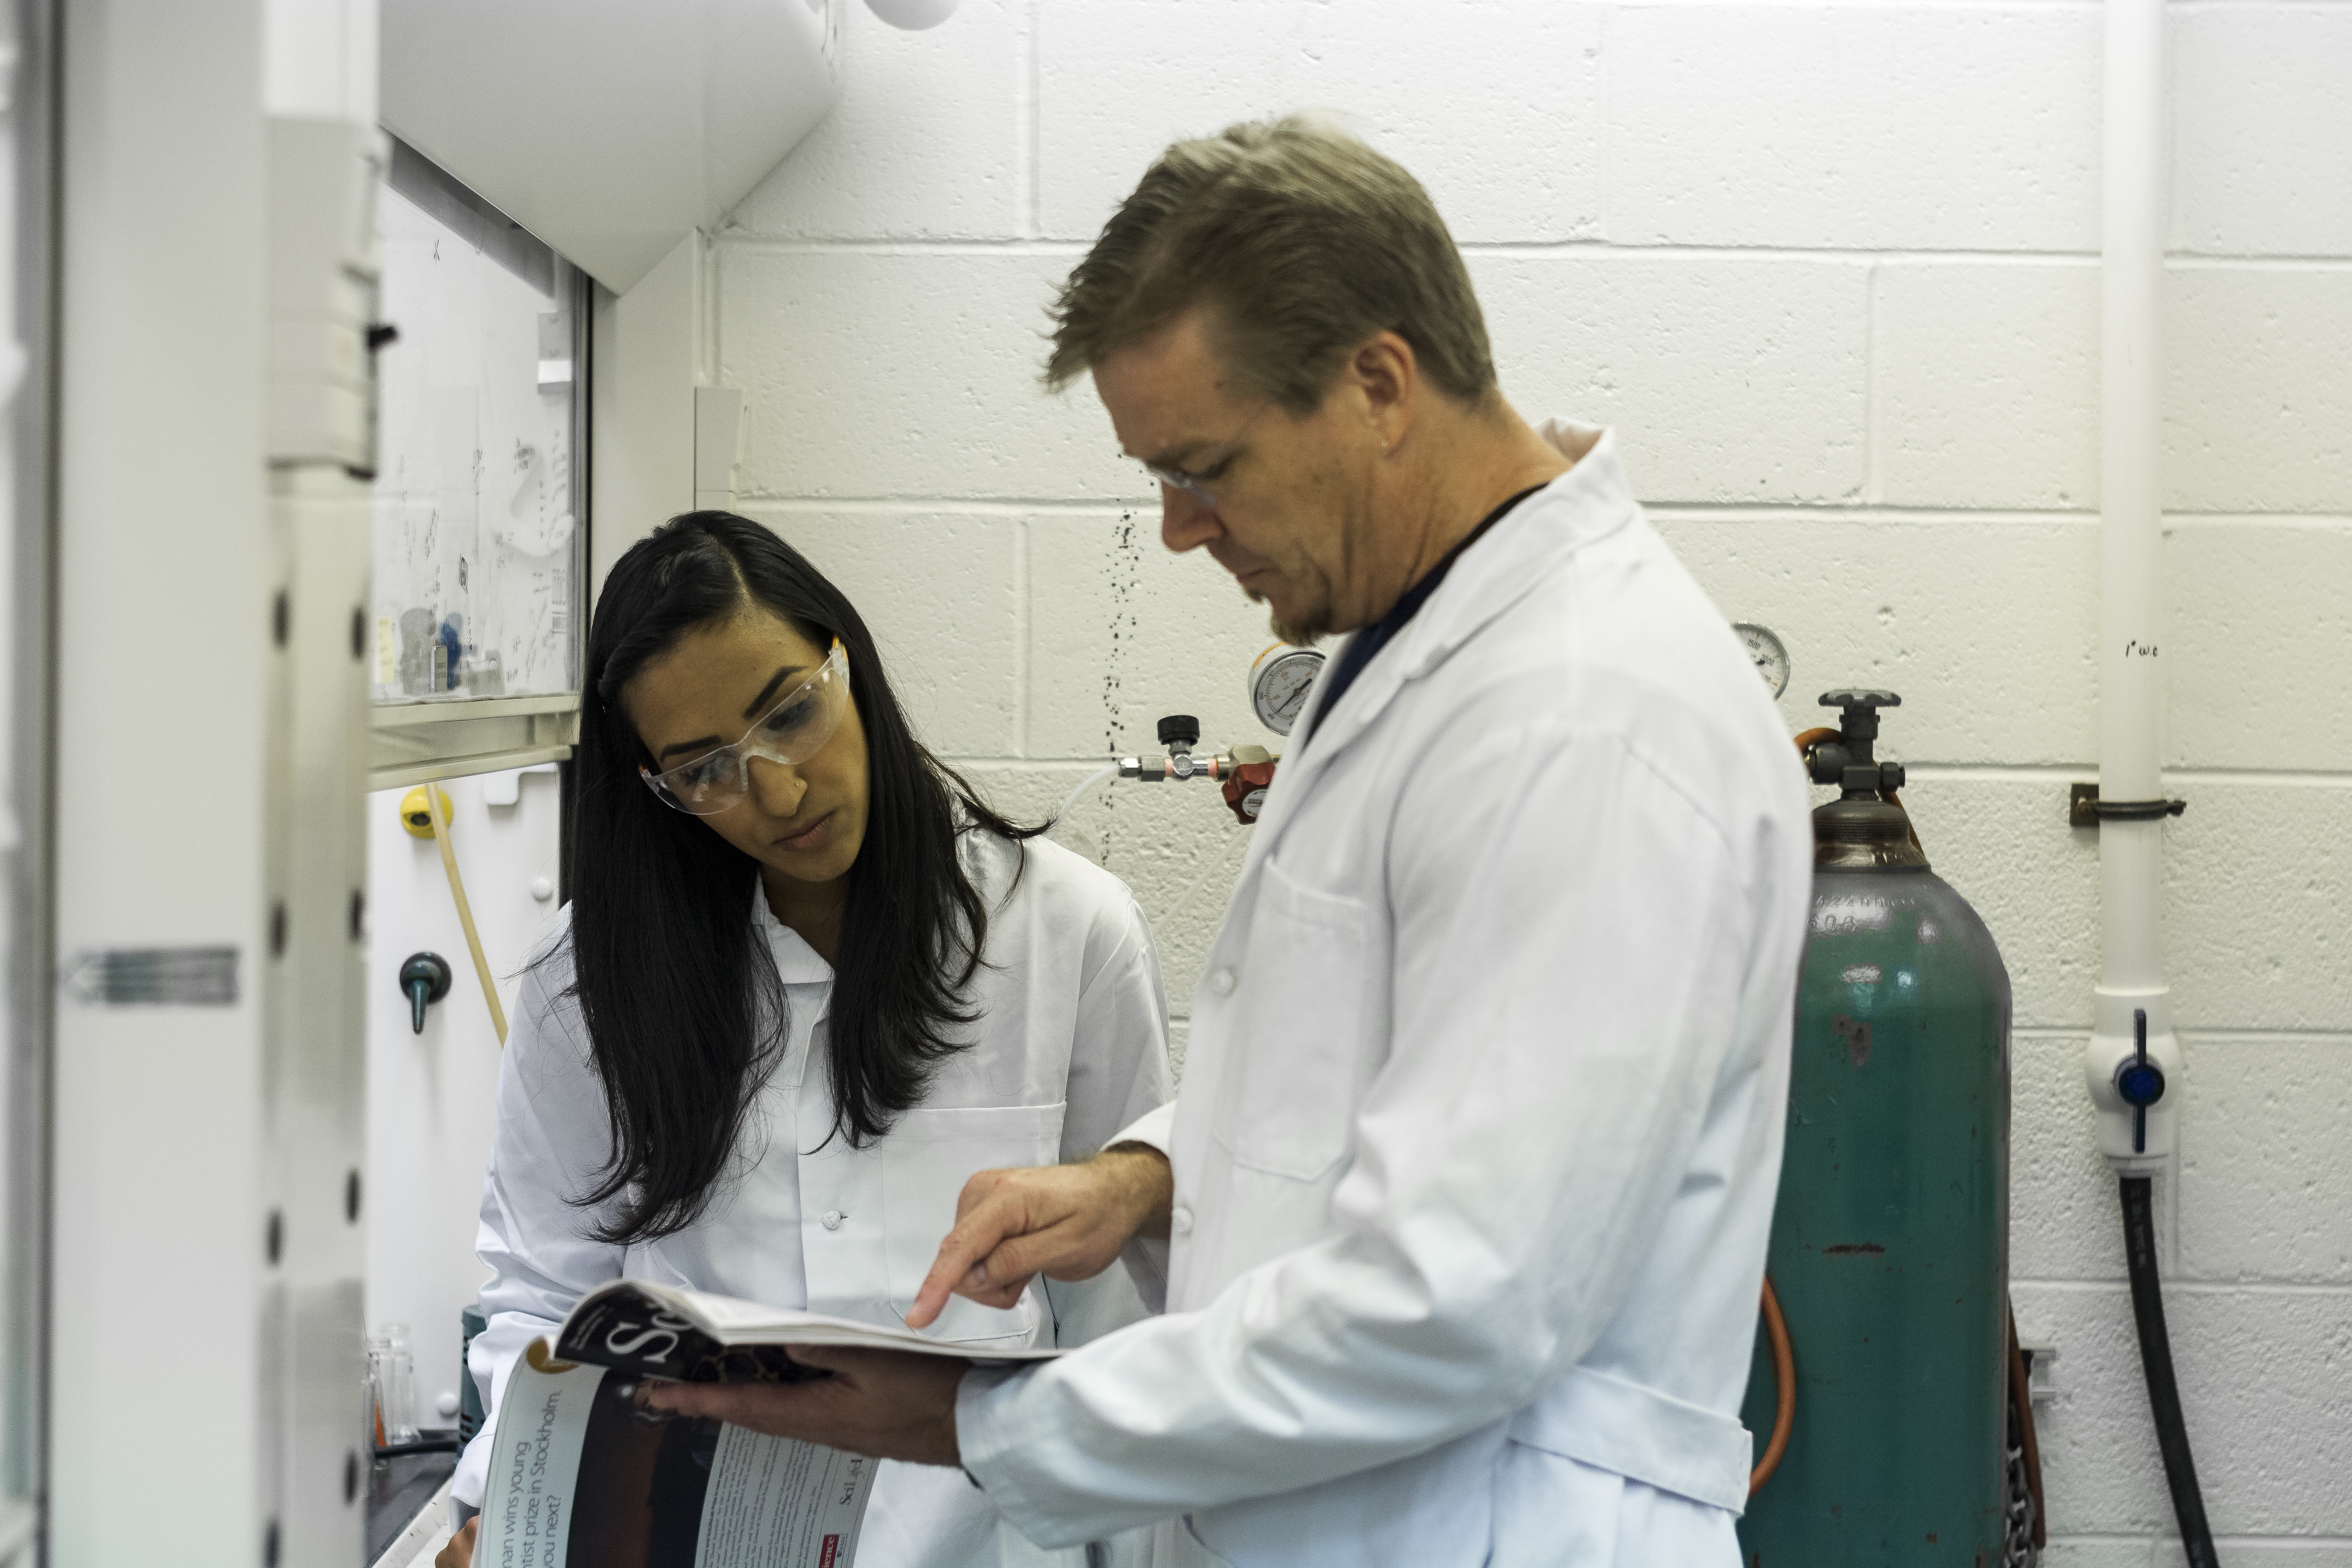 Bob and Niki discuss an interesting article in Science in the lab.